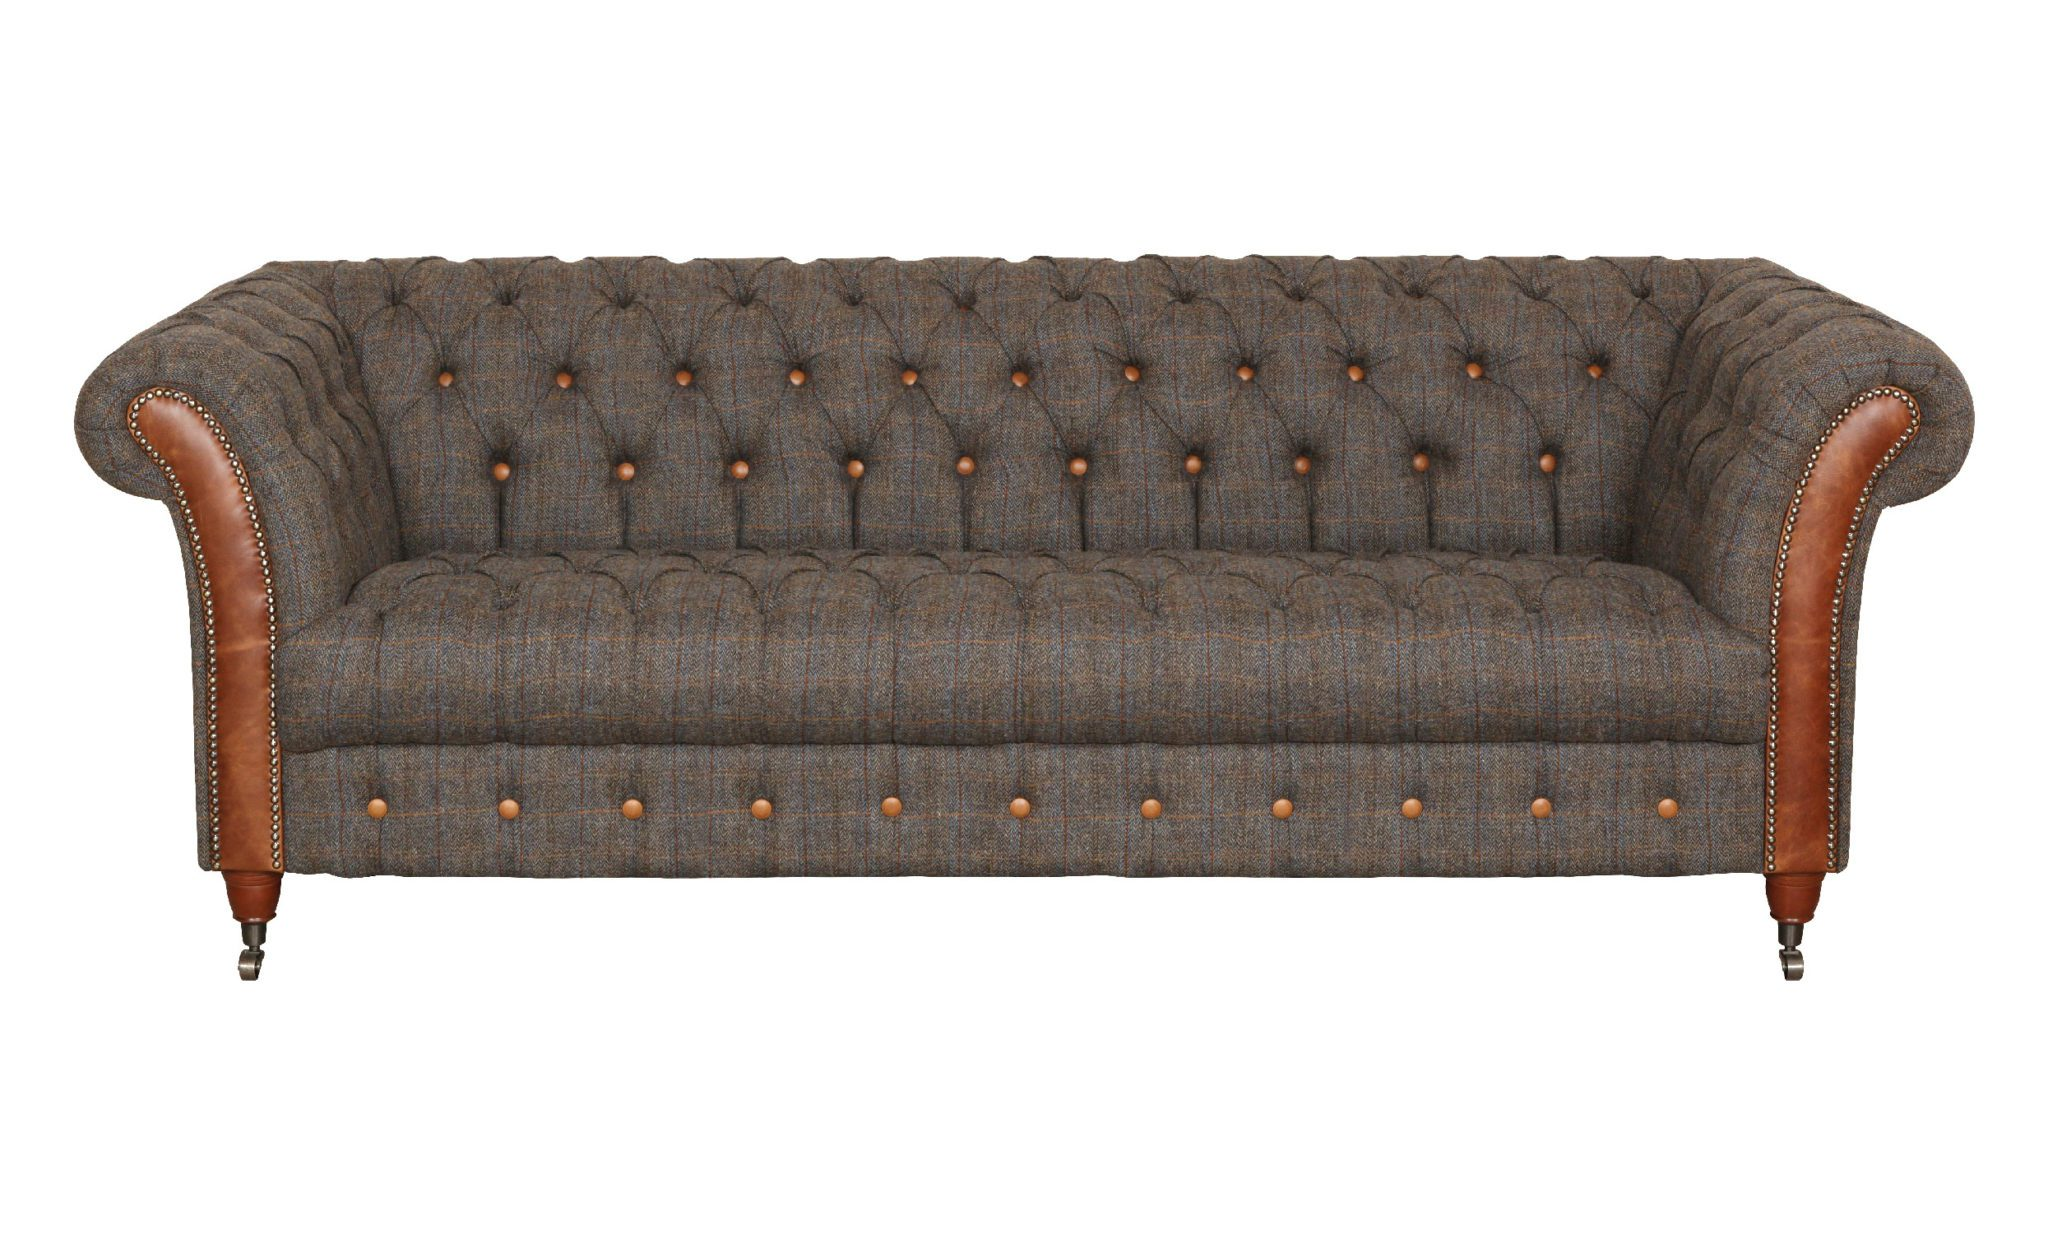 Vintage Sofa Company Chester Club Fast Track 3 Seater Sofa moreland tweed and cerato brown chesterfield sofa